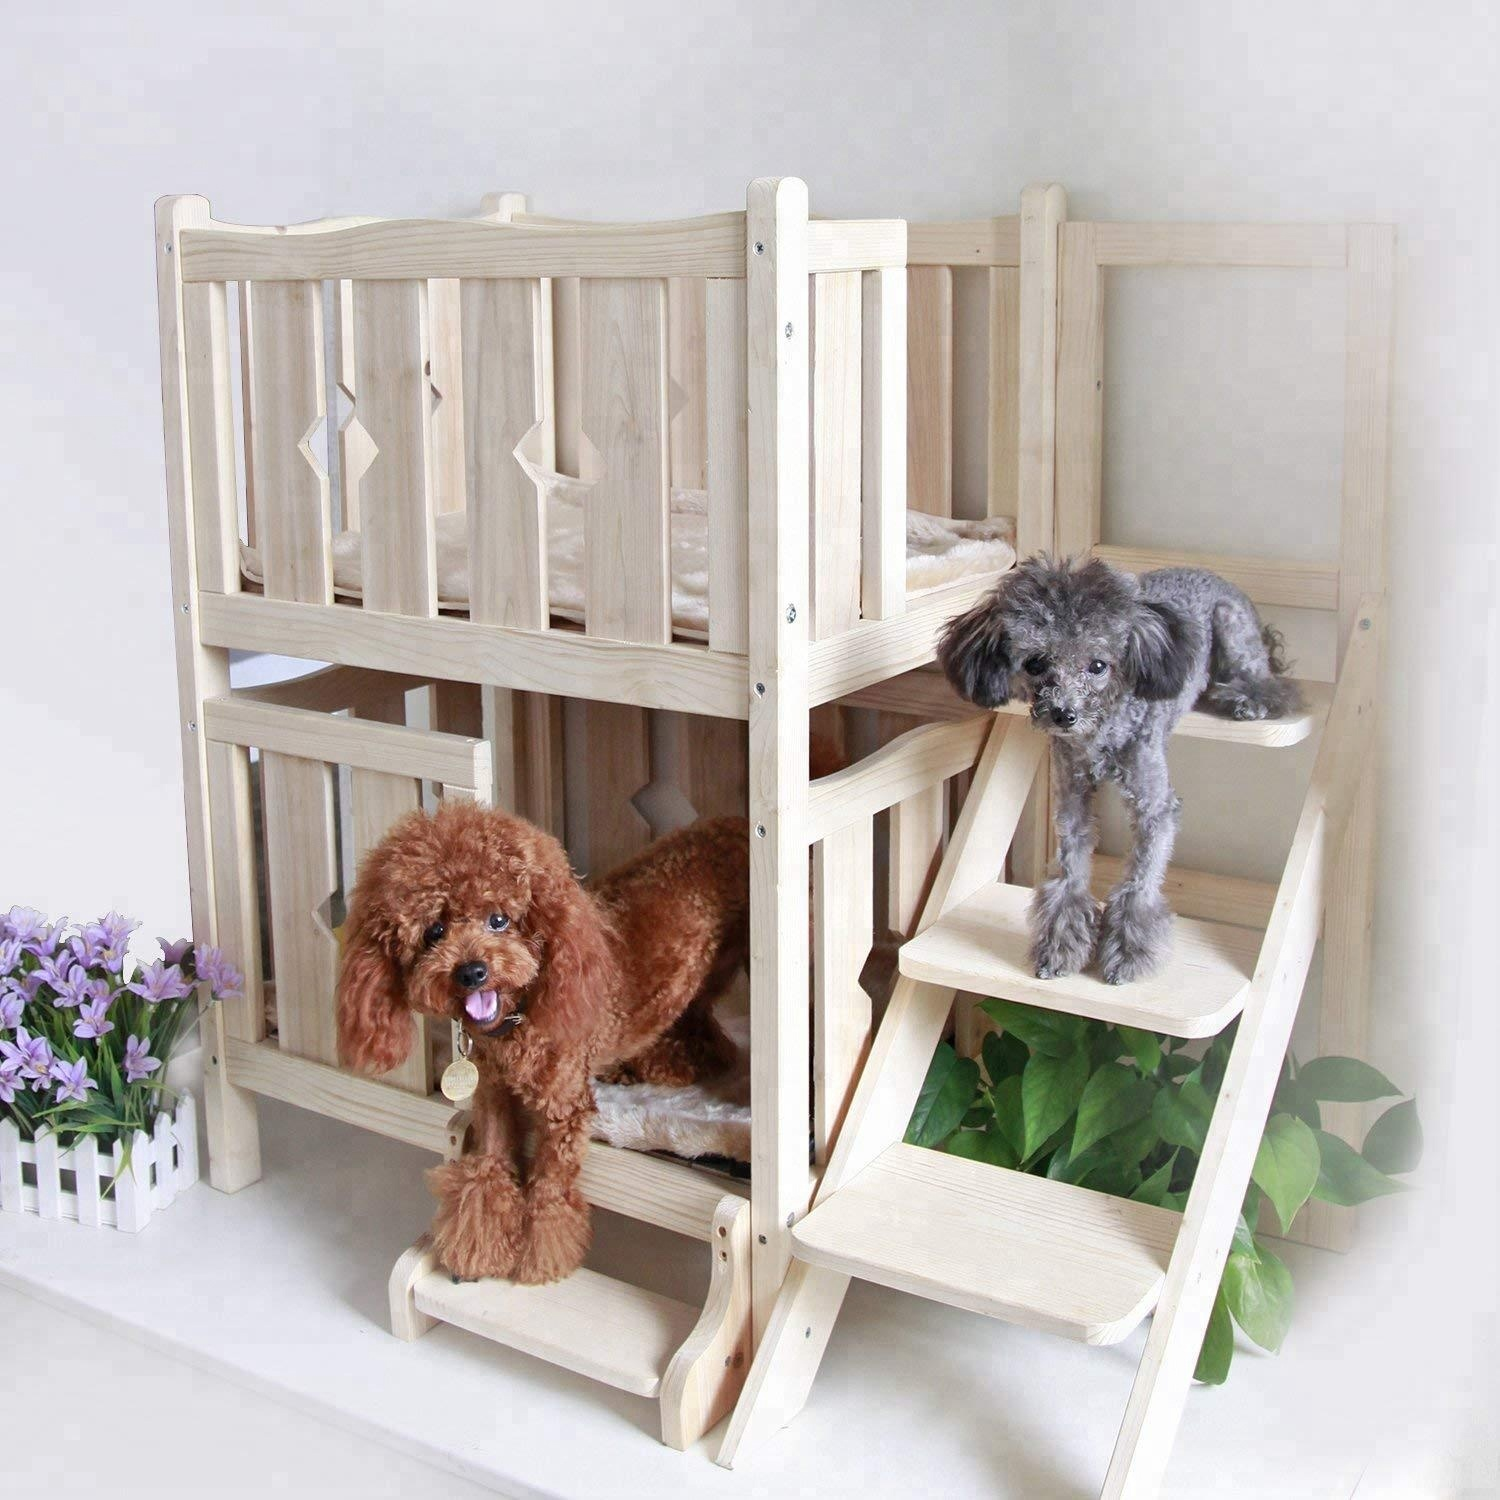 Ladder-bed-2 +80 Adorable Dog Bed Designs That Will Surprise You